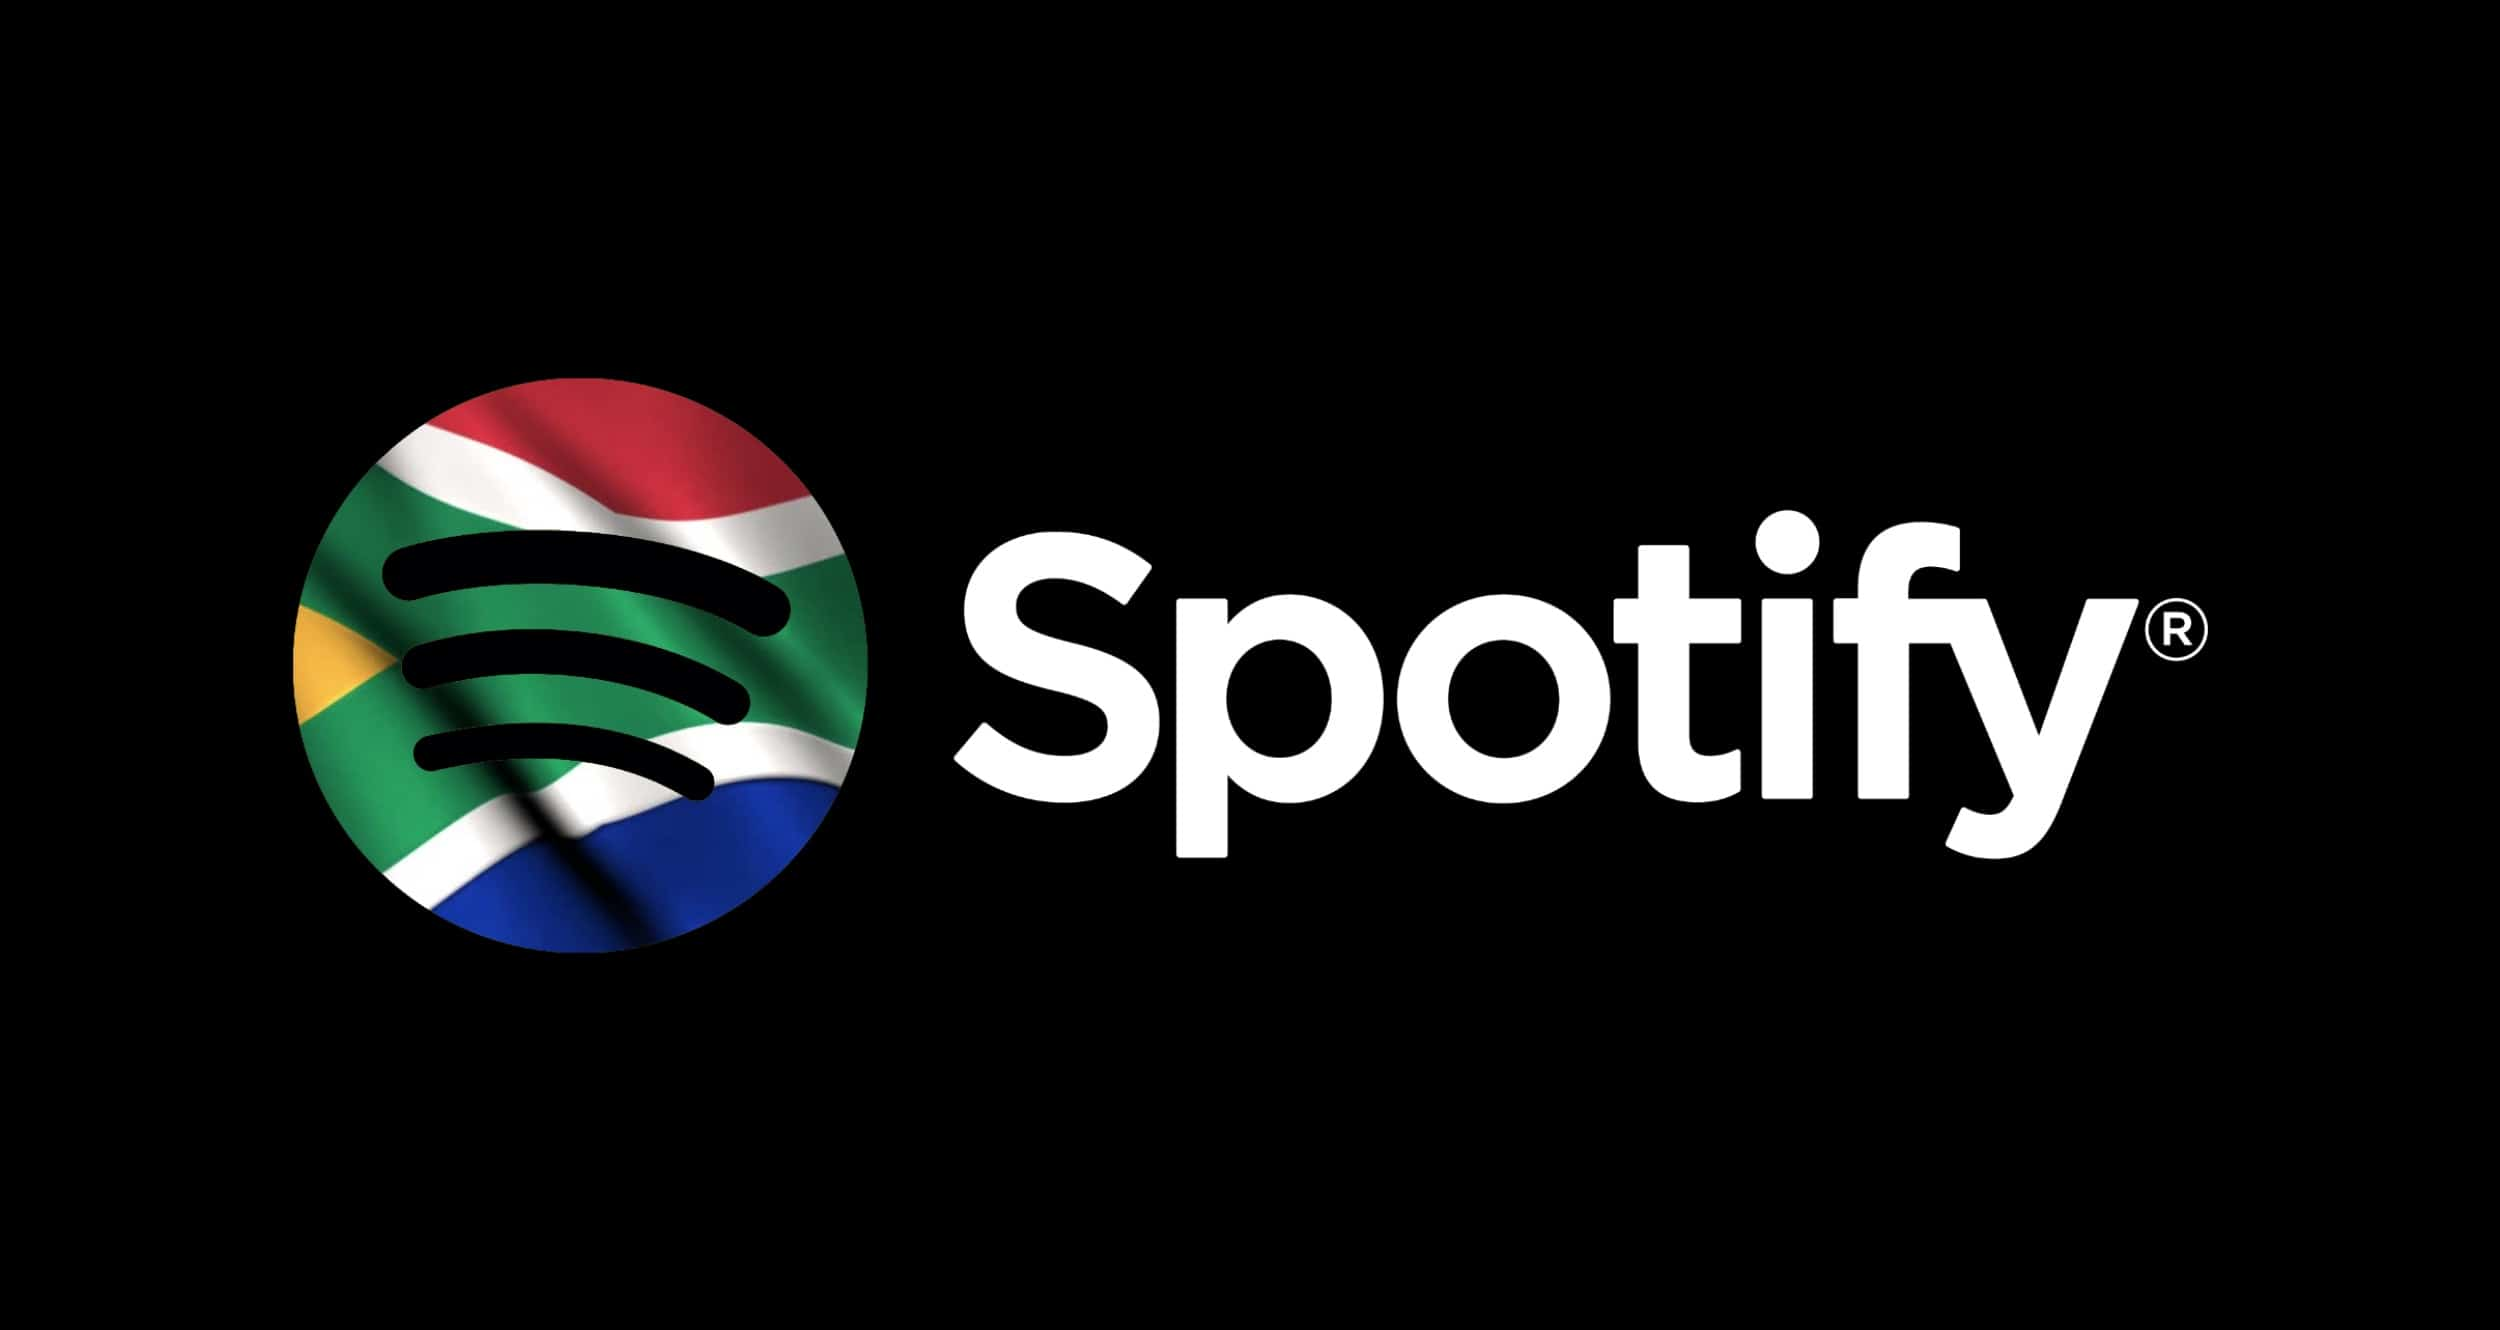 Spotify launches in 3 new countries: South Africa, Vietnam, and Israel